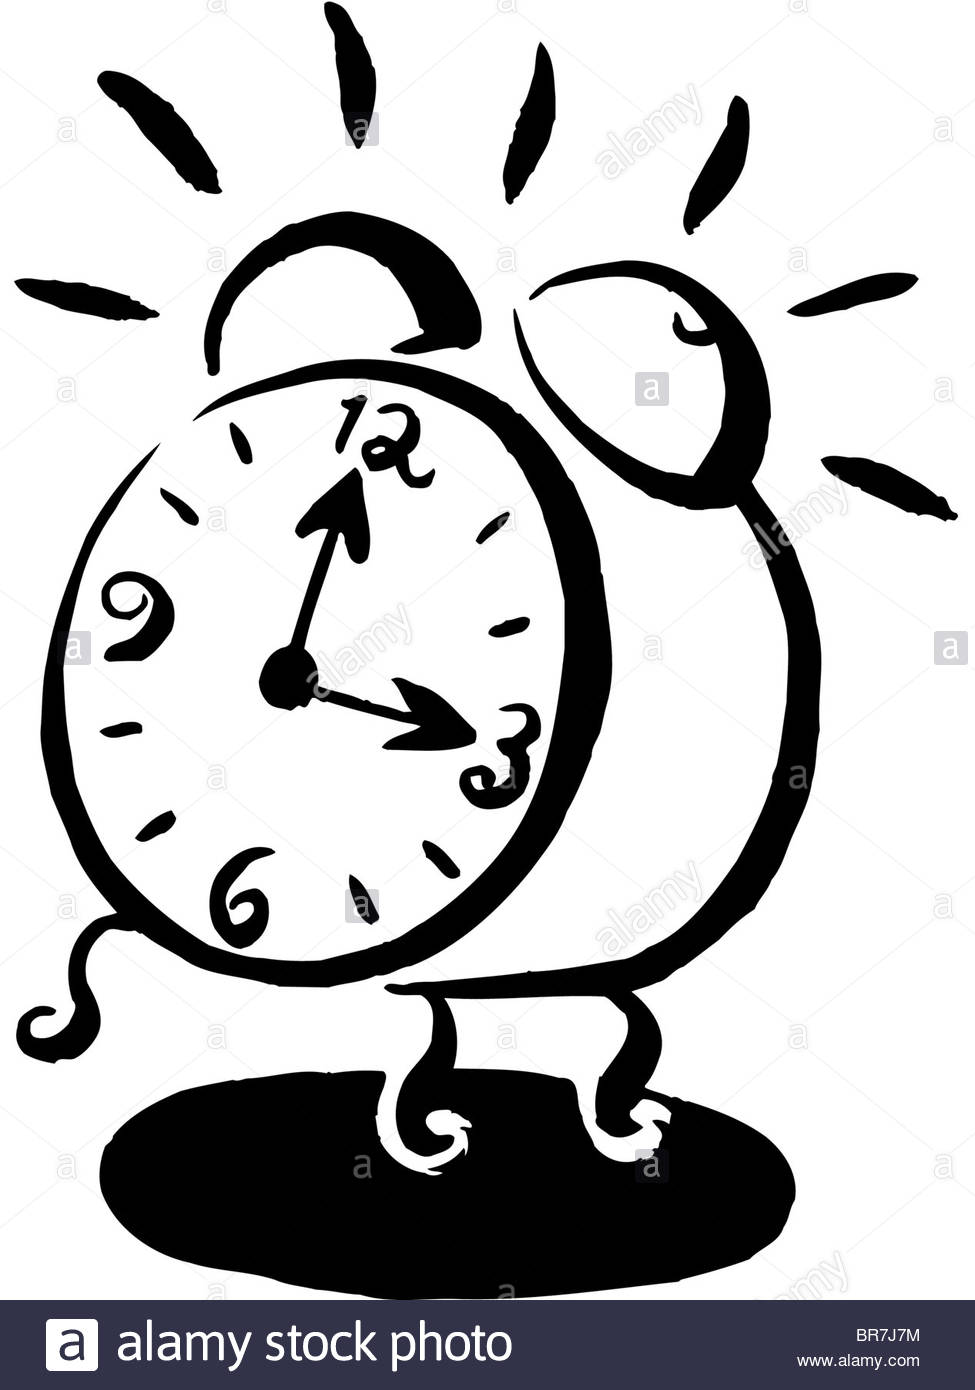 Alarm Clock Ringing Clipart Black And White.